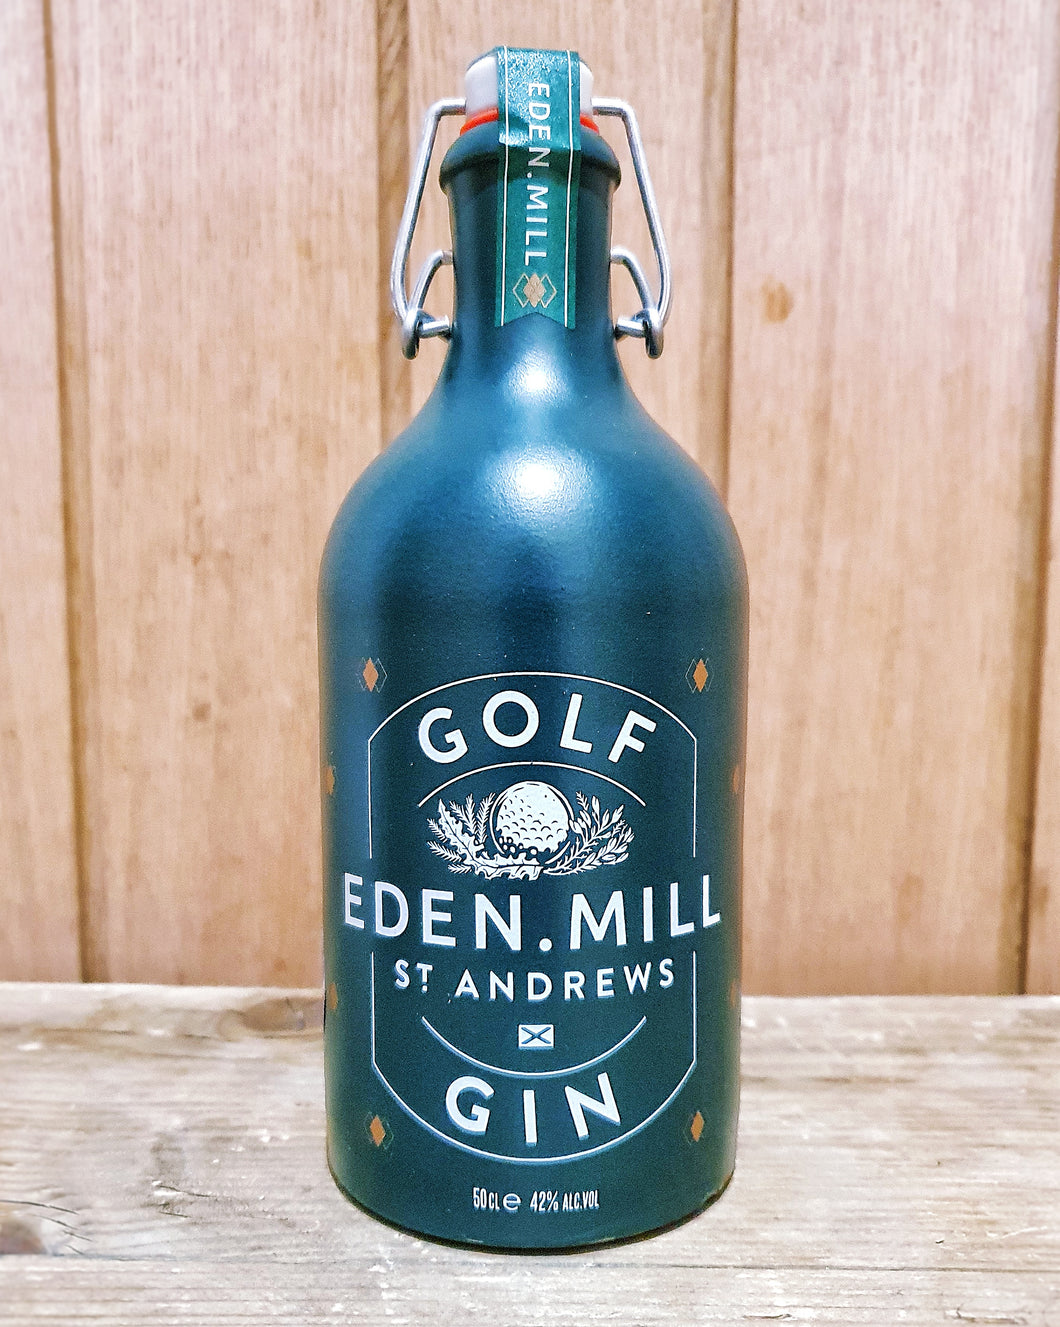 Eden Mill - Golf Gin